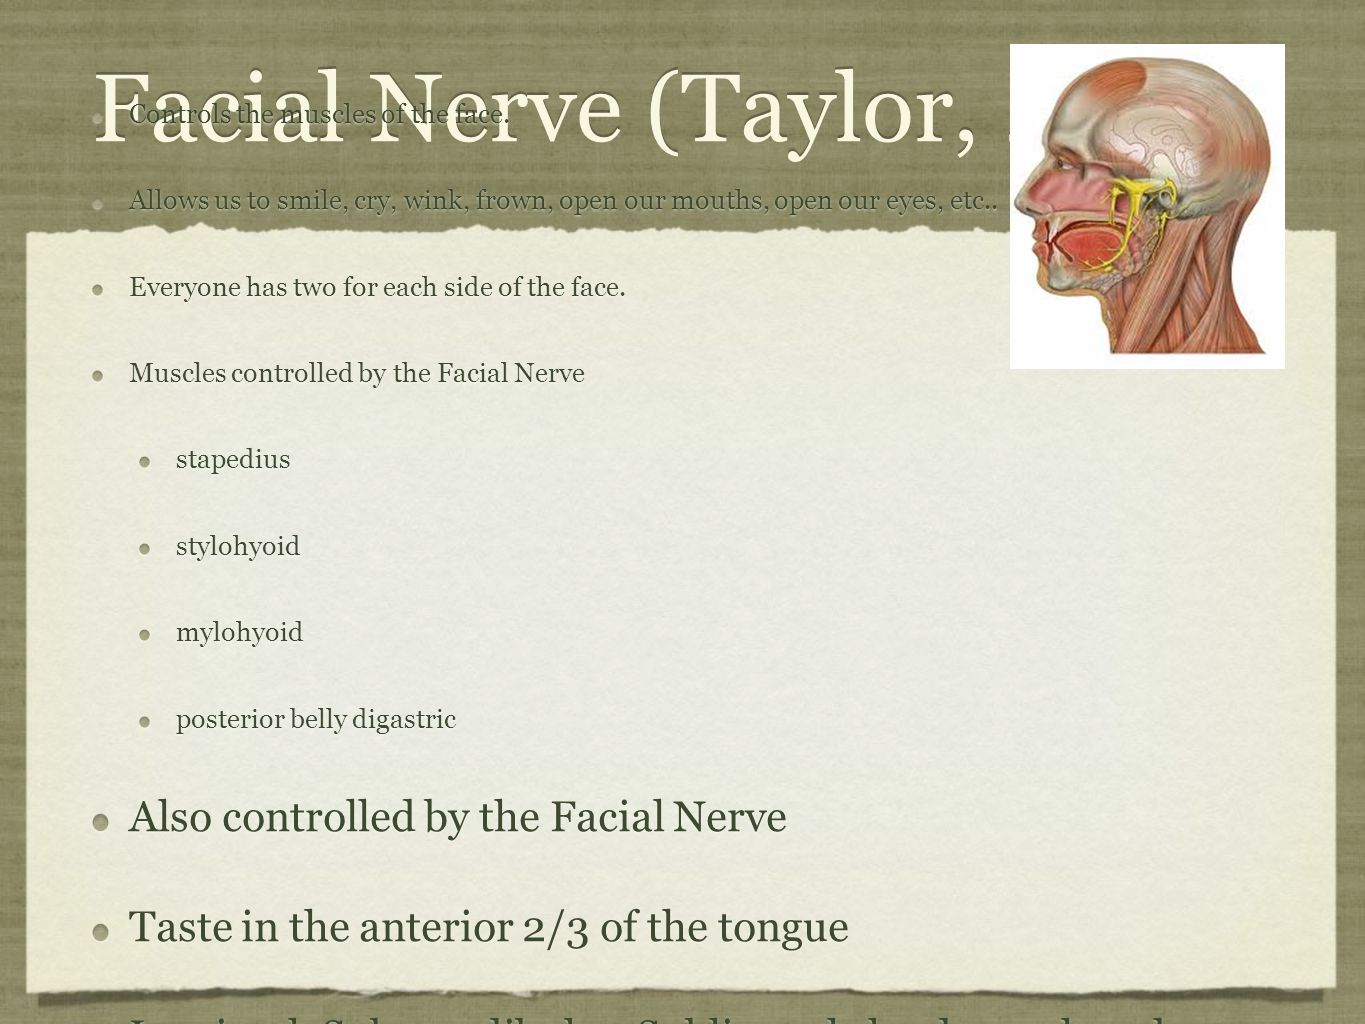 Facial Nerve (Taylor, 2012) Controls the muscles of the face. Allows us to smile, cry, wink, frown, open our mouths, open our eyes, etc.. Everyone has